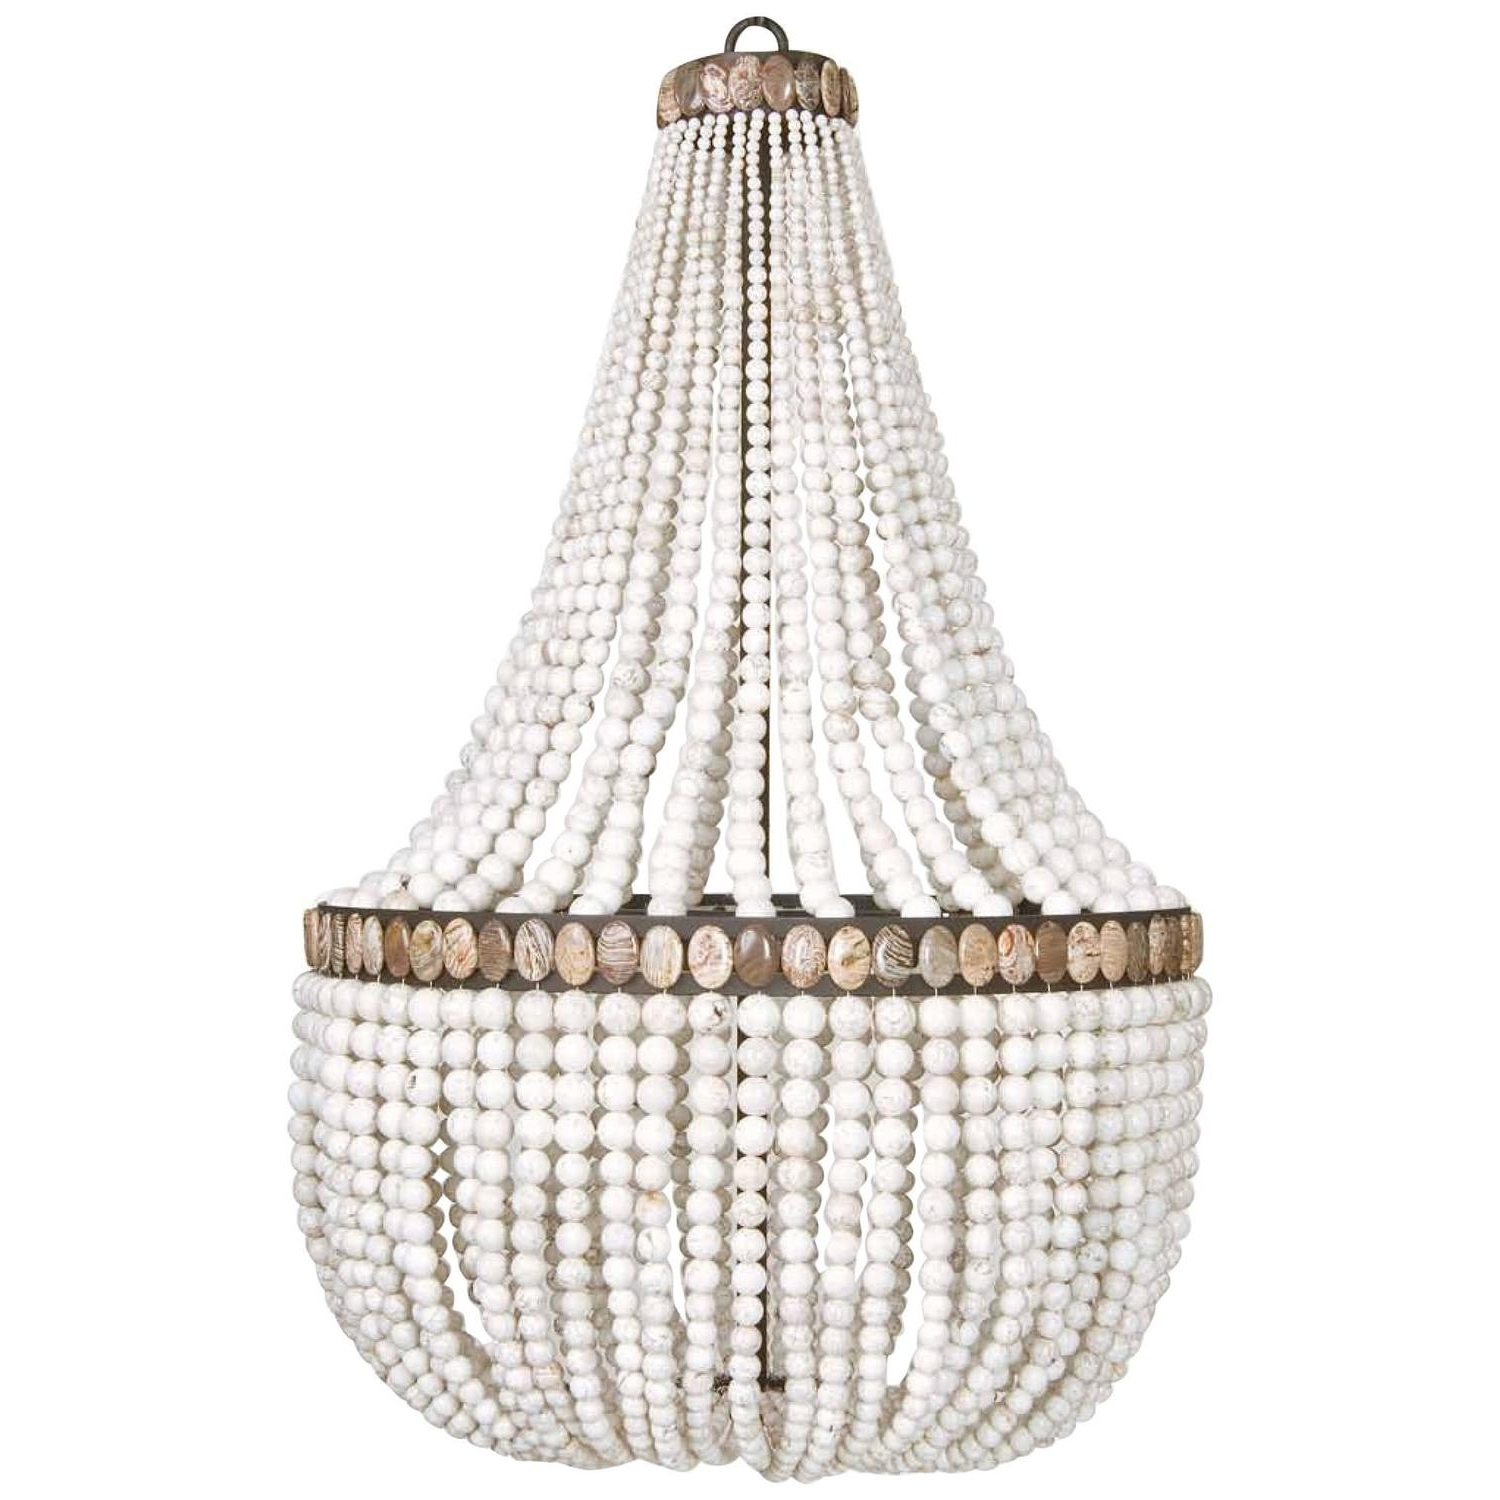 Well Liked White Turquoise Empire Chandeliermarjorie Skouras At 1stdibs Intended For Turquoise Stone Chandelier Lighting (View 9 of 20)